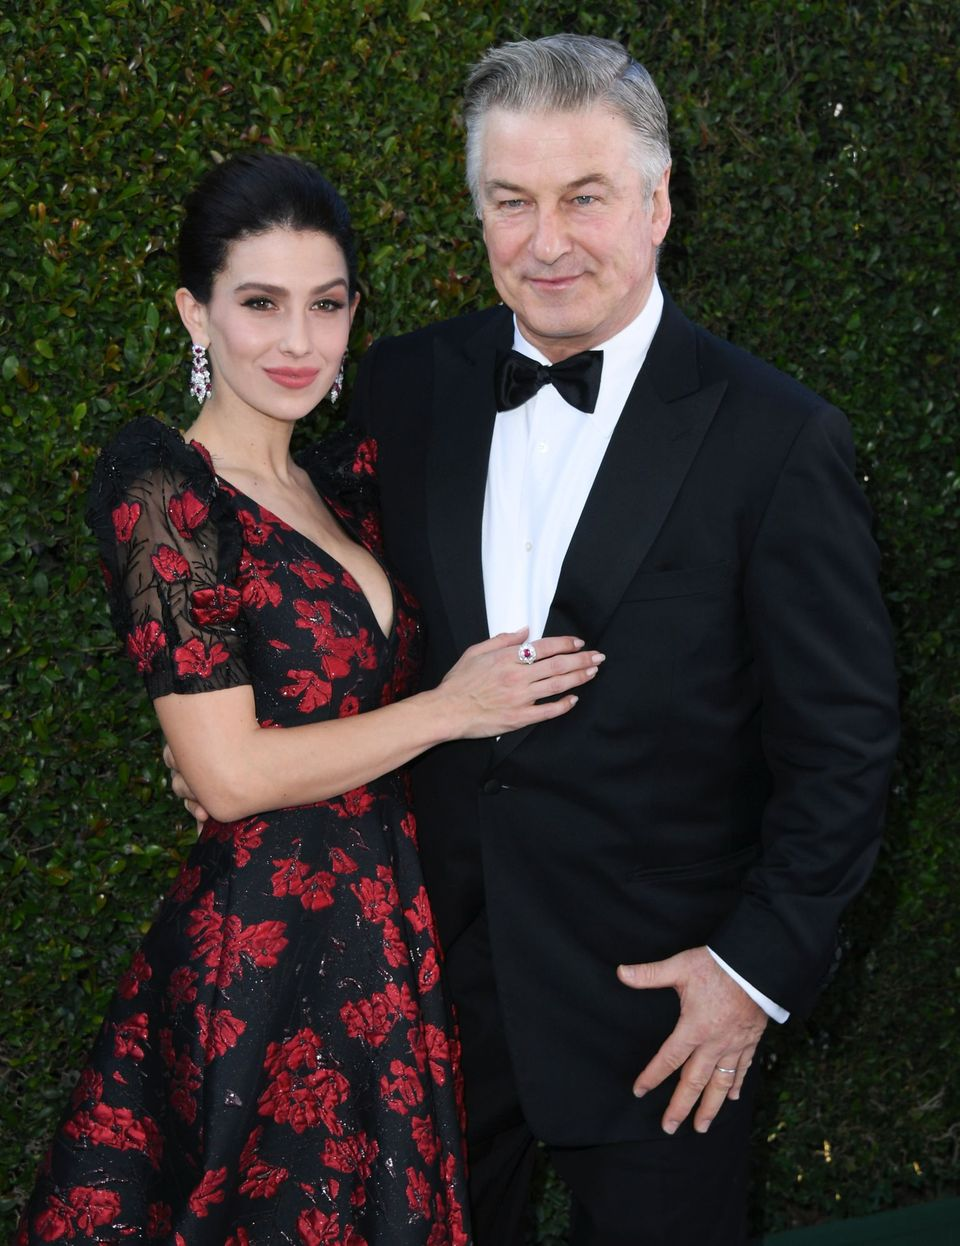 Hilaria and Alec Baldwin during the 25th Annual Screen Actors Guild Awards on January 27, 2019, in Los Angeles, California. | Source: Getty Images